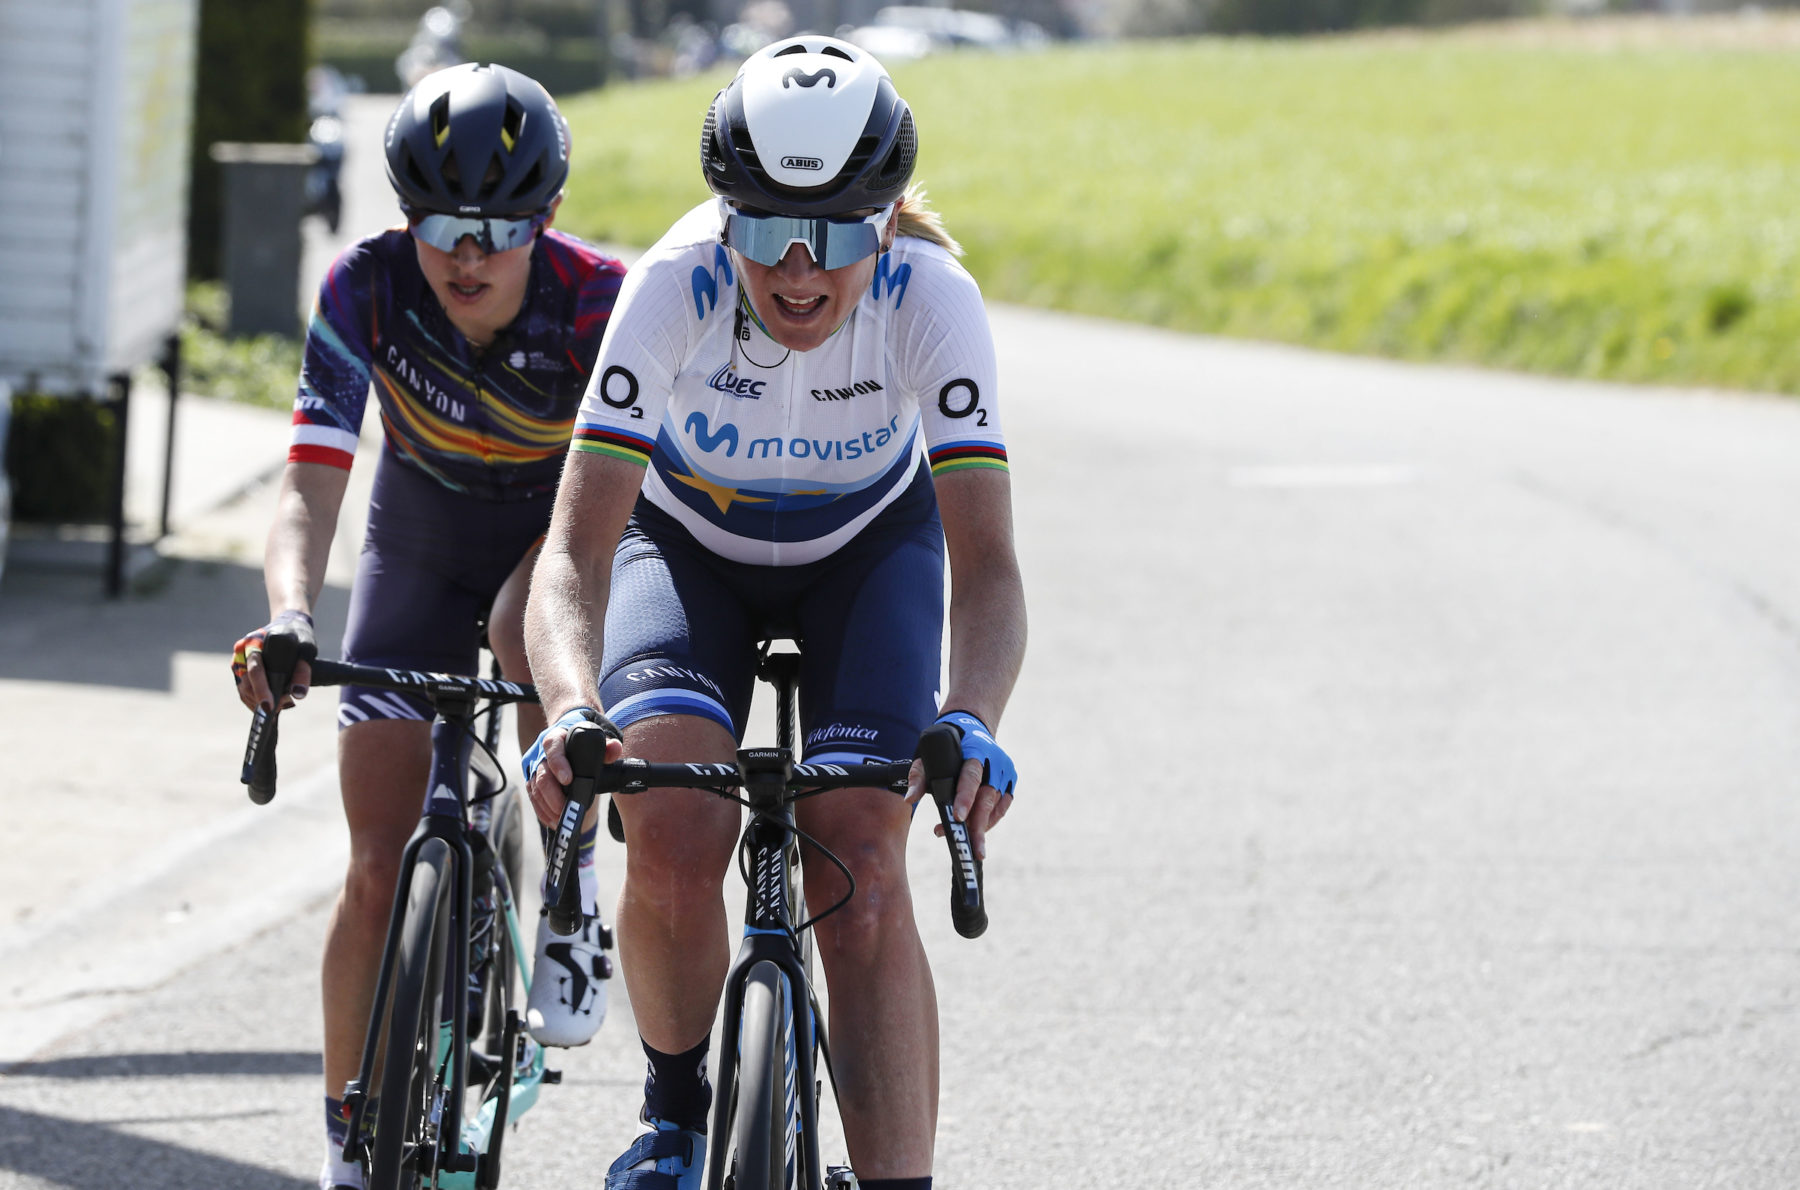 Imagen de la noticia 'Annemiek van Vleuten back racing at De Brabantse Pijl (Wednesday 14th)'